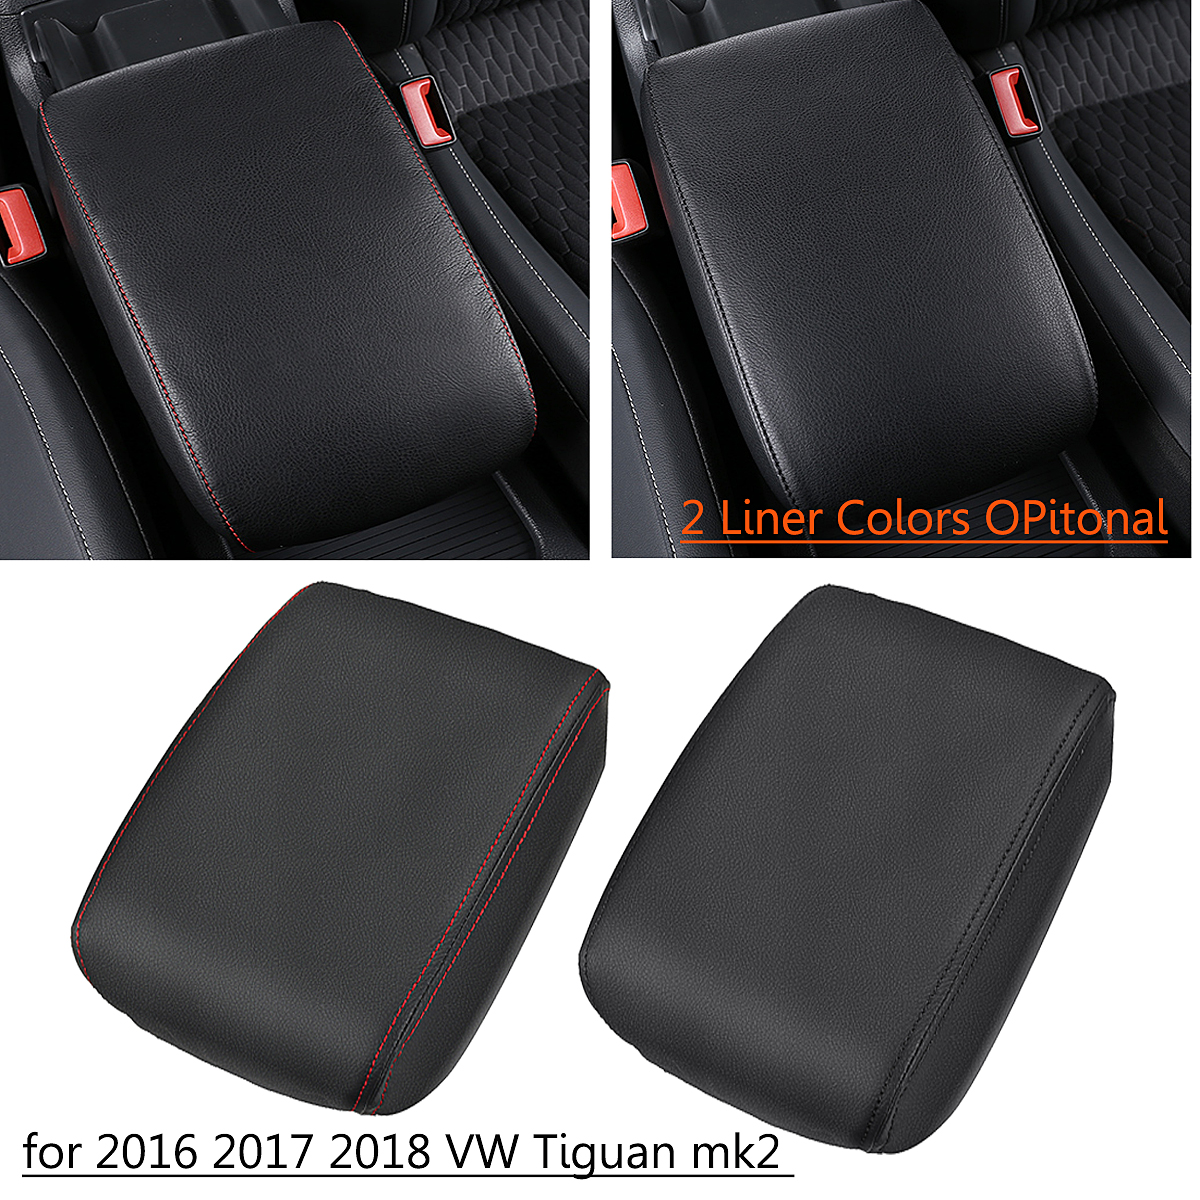 Car Center Console Seat Armrest Box Pads Cover PU Leather for Volkswagen VW Tiguan MK2 <font><b>2016</b></font> 2017 2018 Car Styling Accessories image